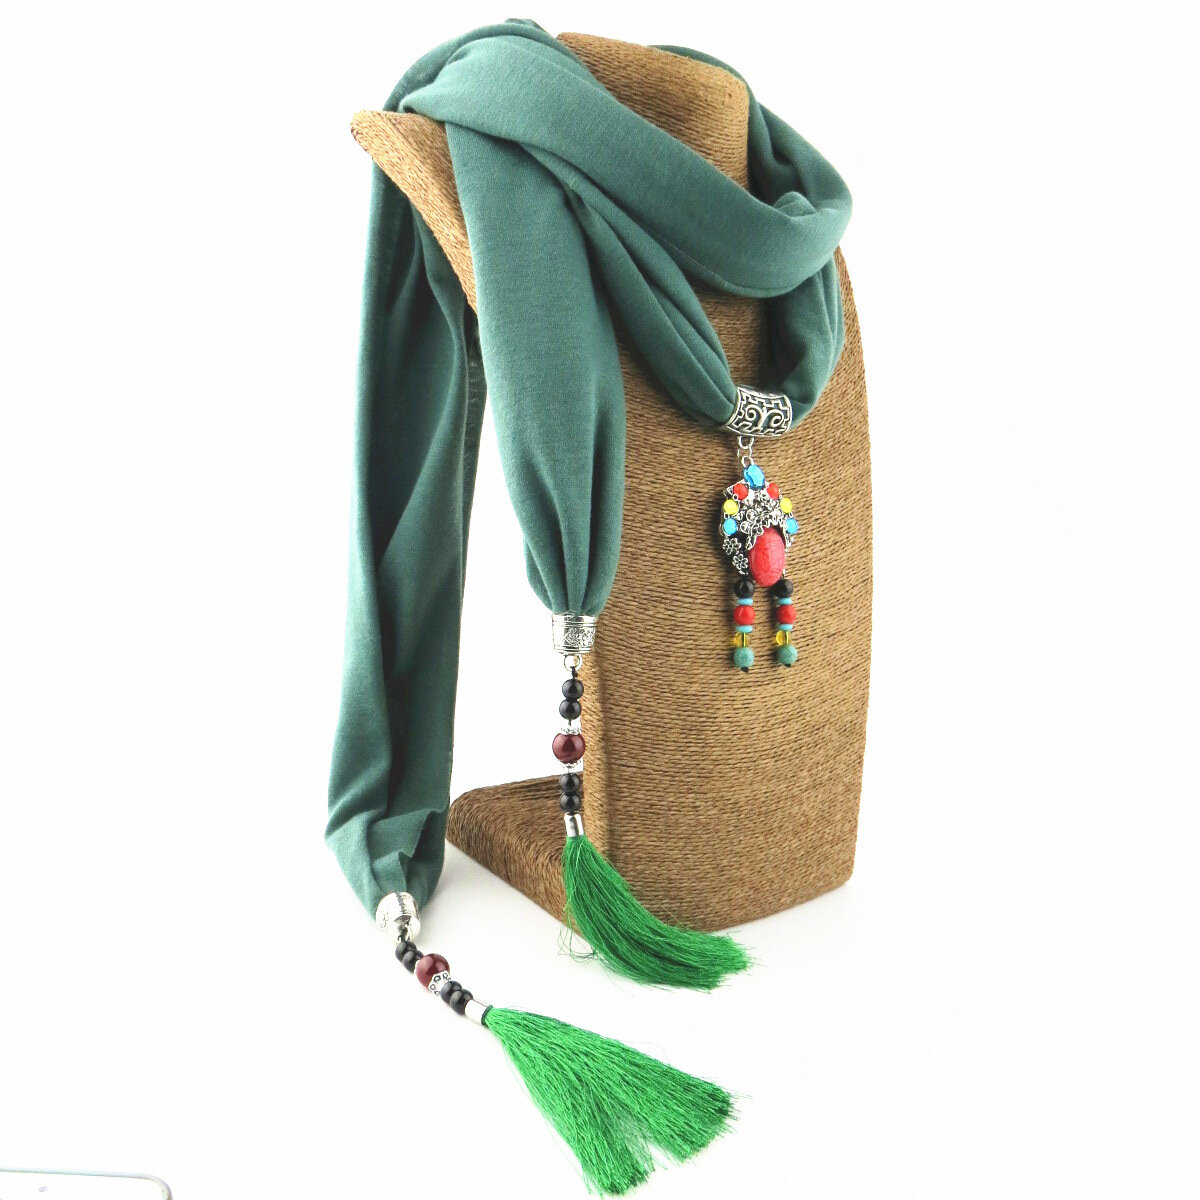 Bohemian Printed Cotton Linen Multi-layer Necklace Drop Women Pendant Scarf Shawl Jewelry Necklace